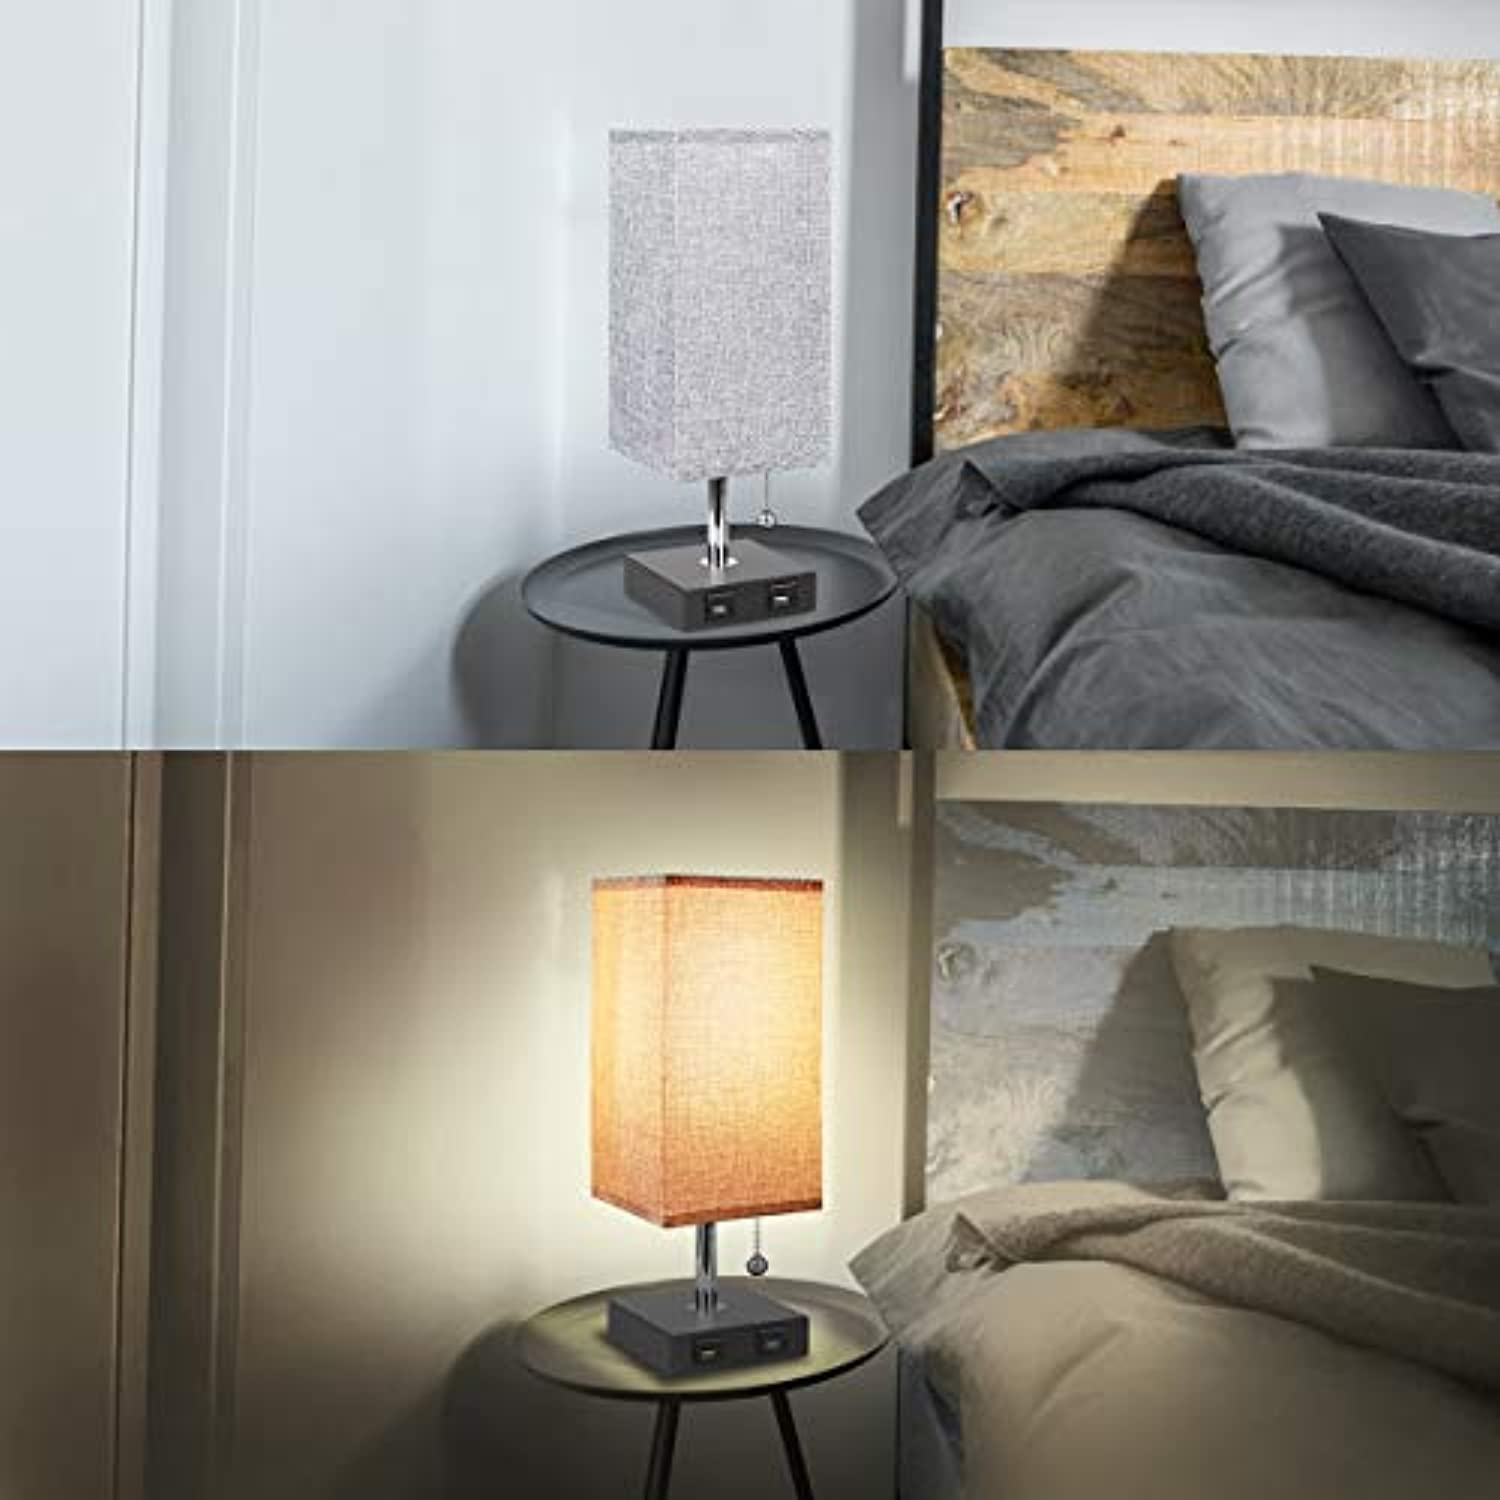 Modern Nightstand Lamp With Usb